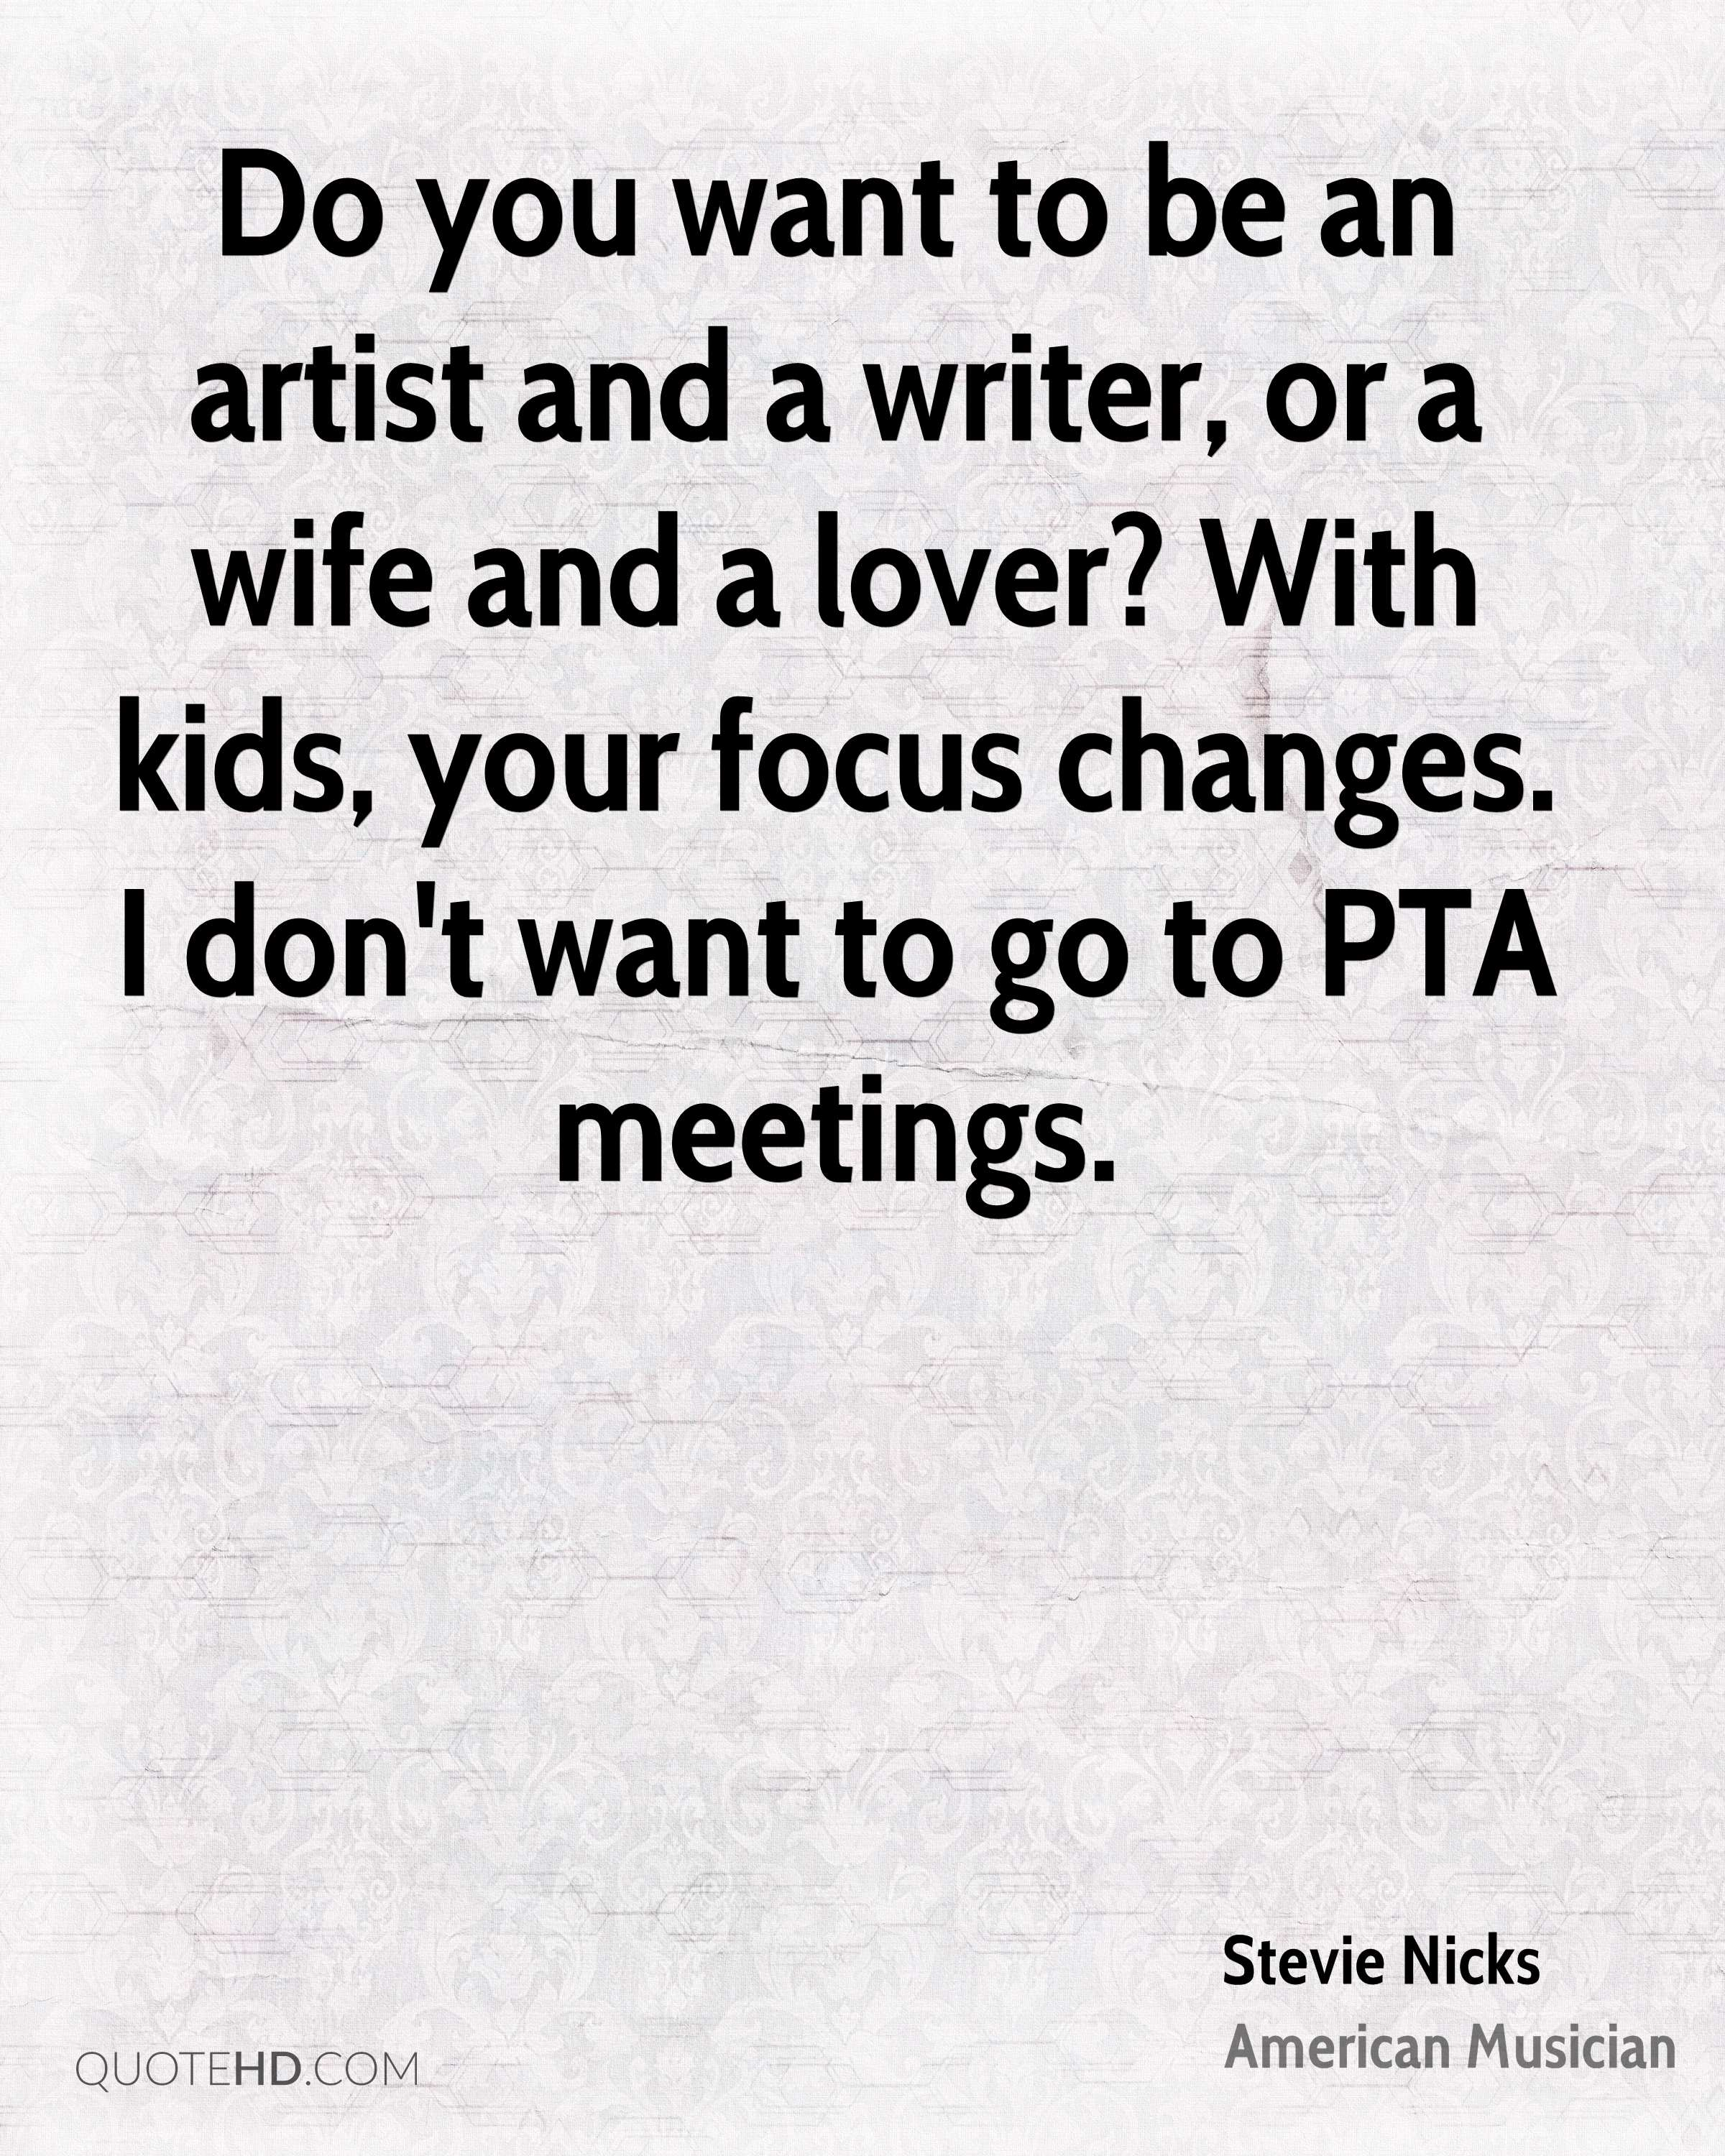 Do you want to be an artist and a writer, or a wife and a lover? With kids, your focus changes. I don't want to go to PTA meetings.